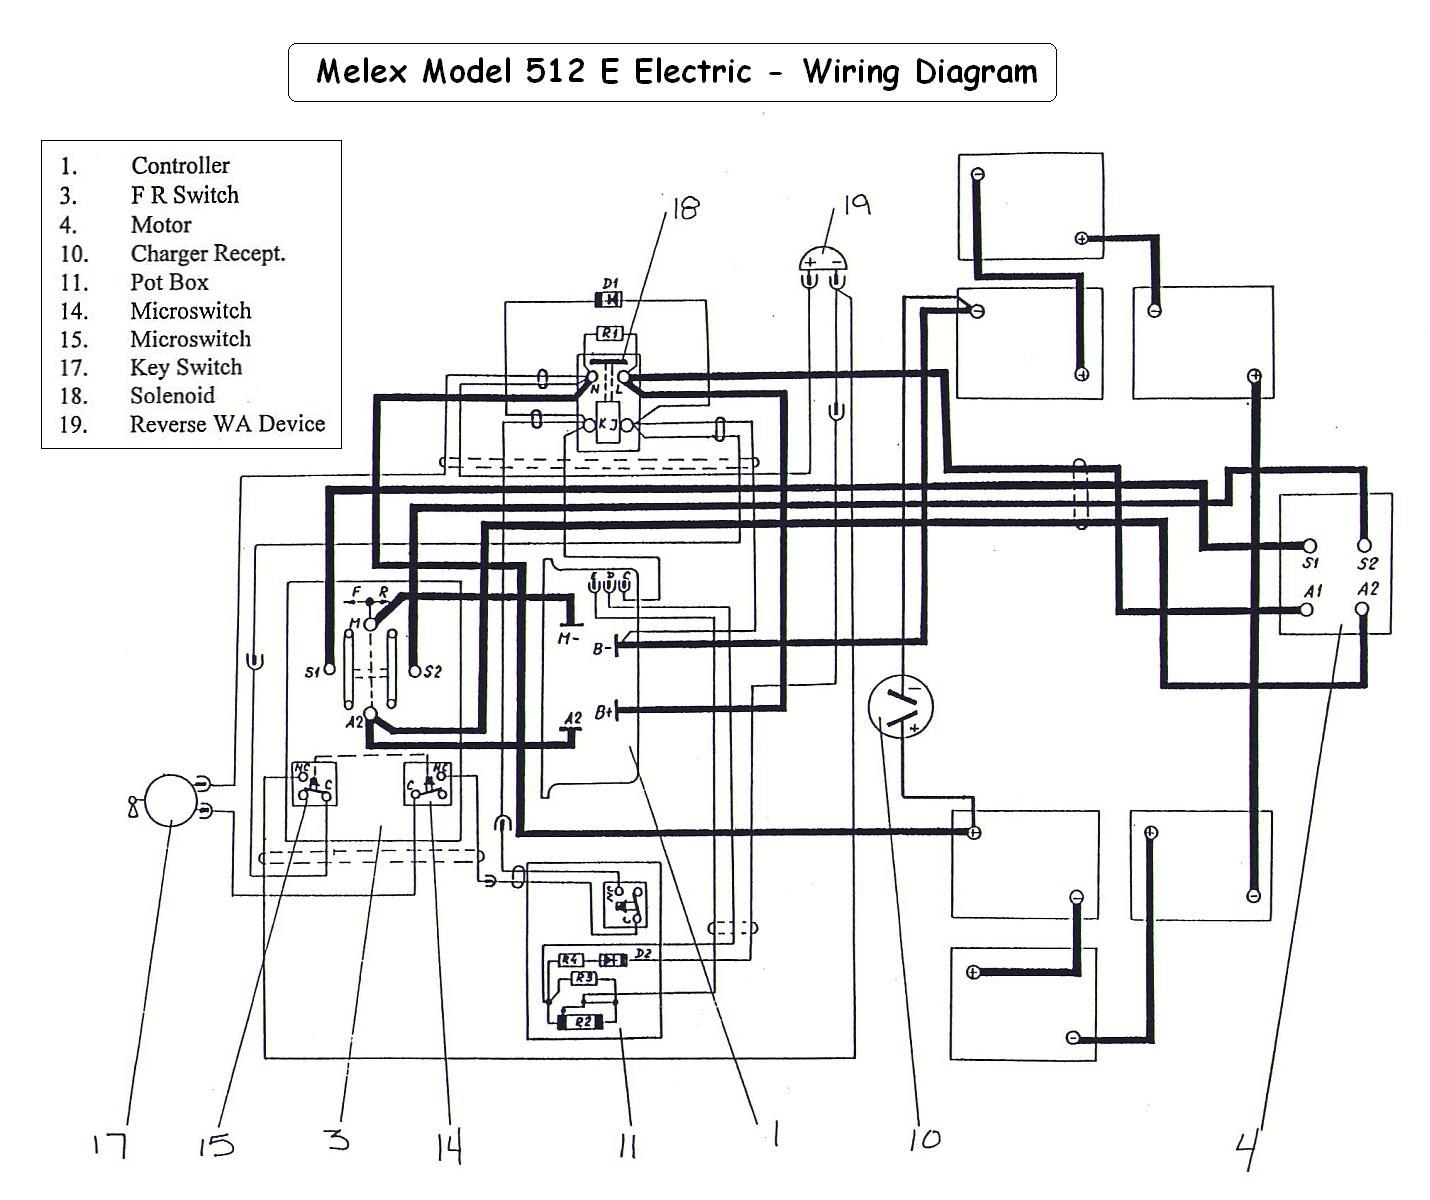 Melex512E_wiring_diagram vintagegolfcartparts com golf cart battery charger wiring diagram at bakdesigns.co